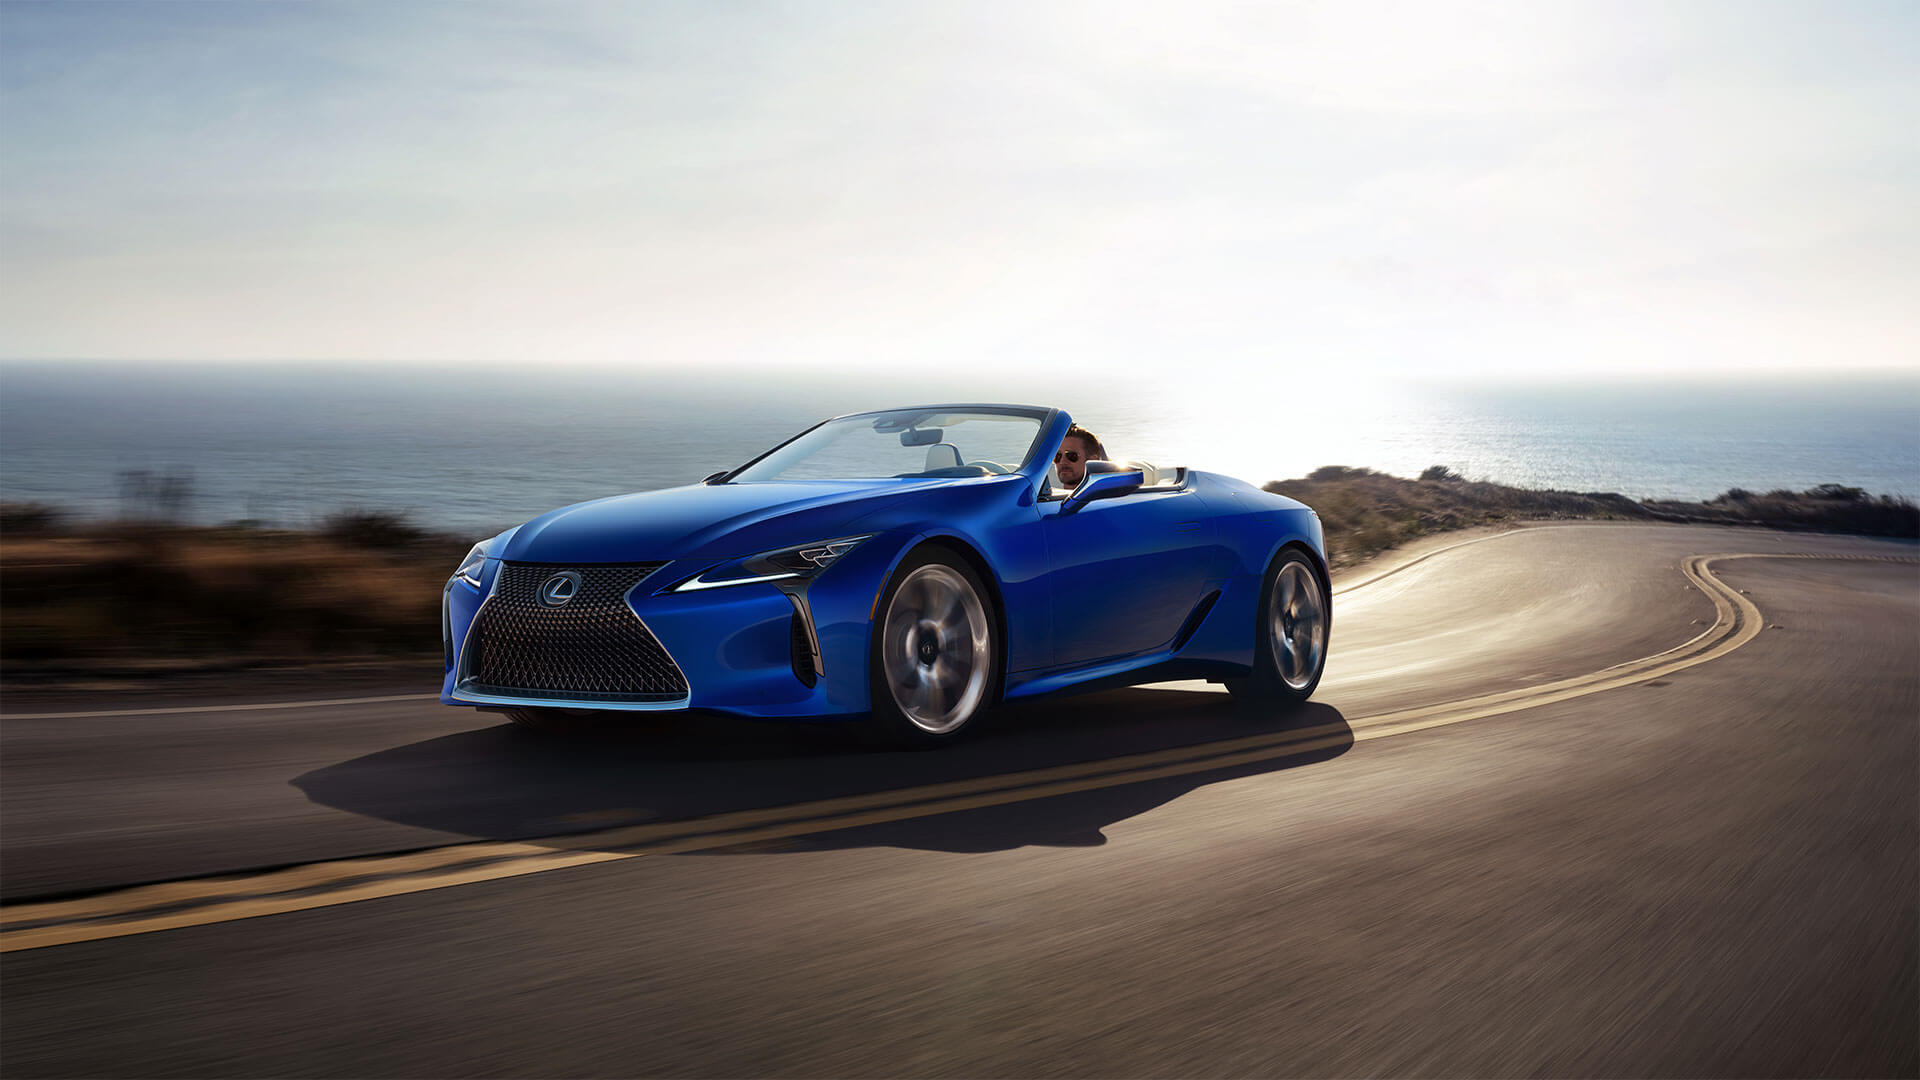 2020 lc convertible gallery 08